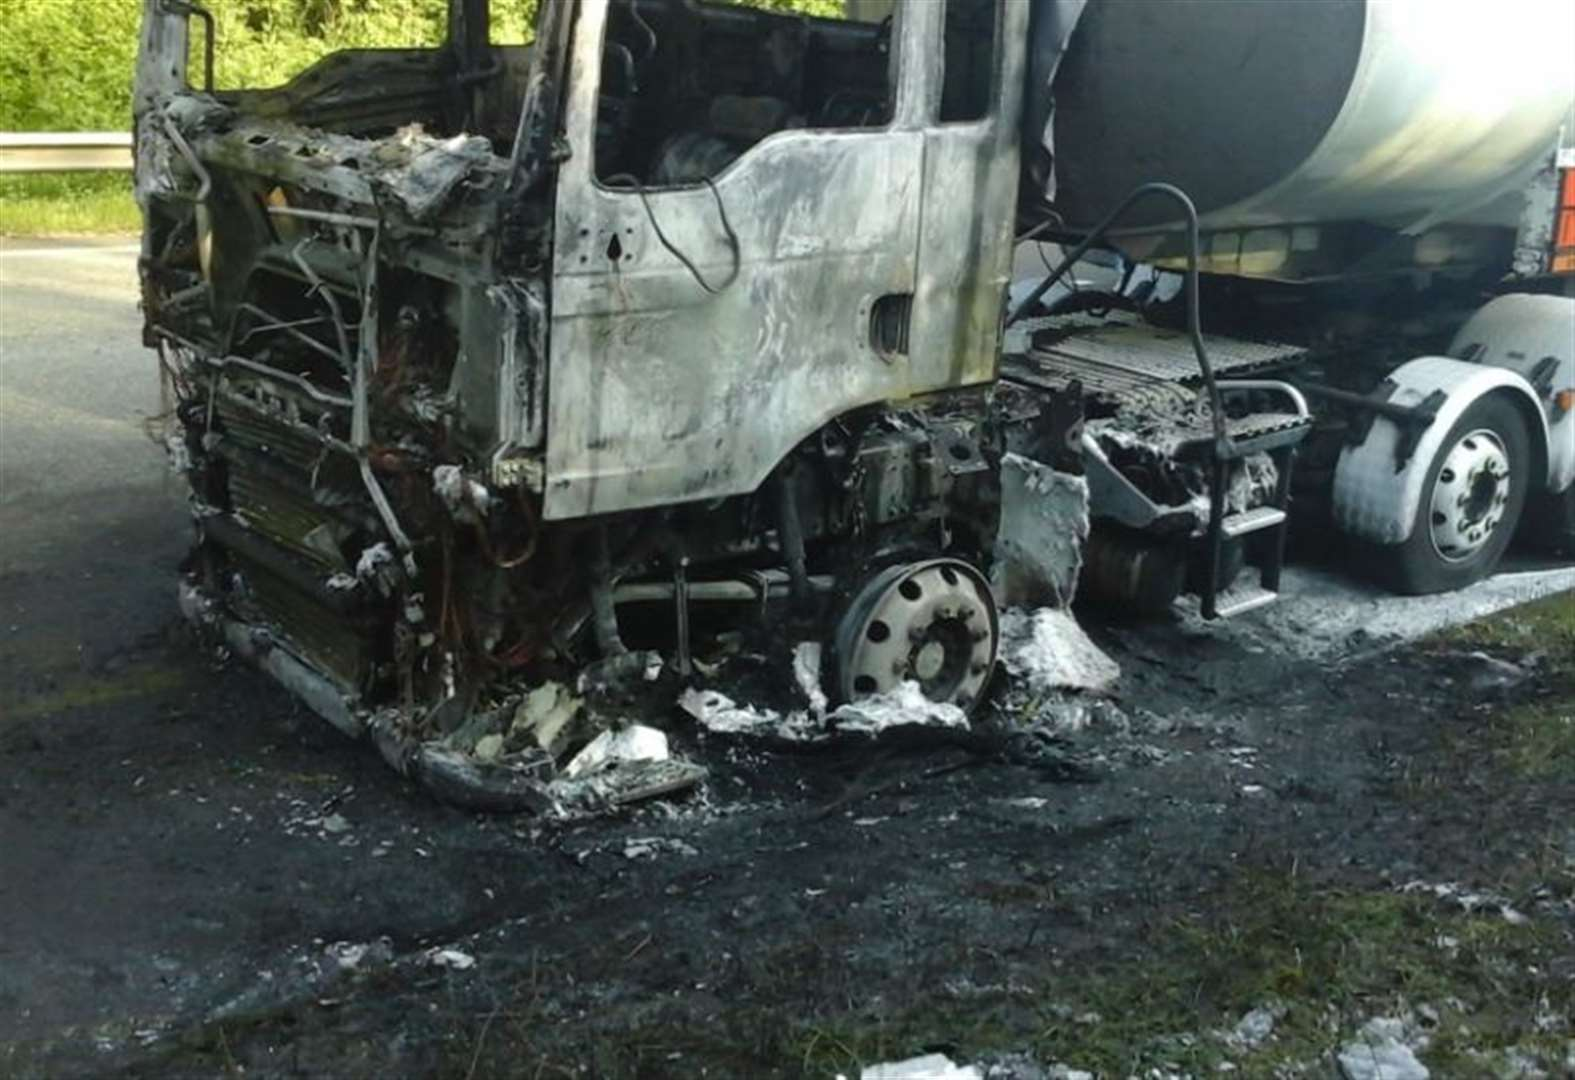 Lorry fire closed M25